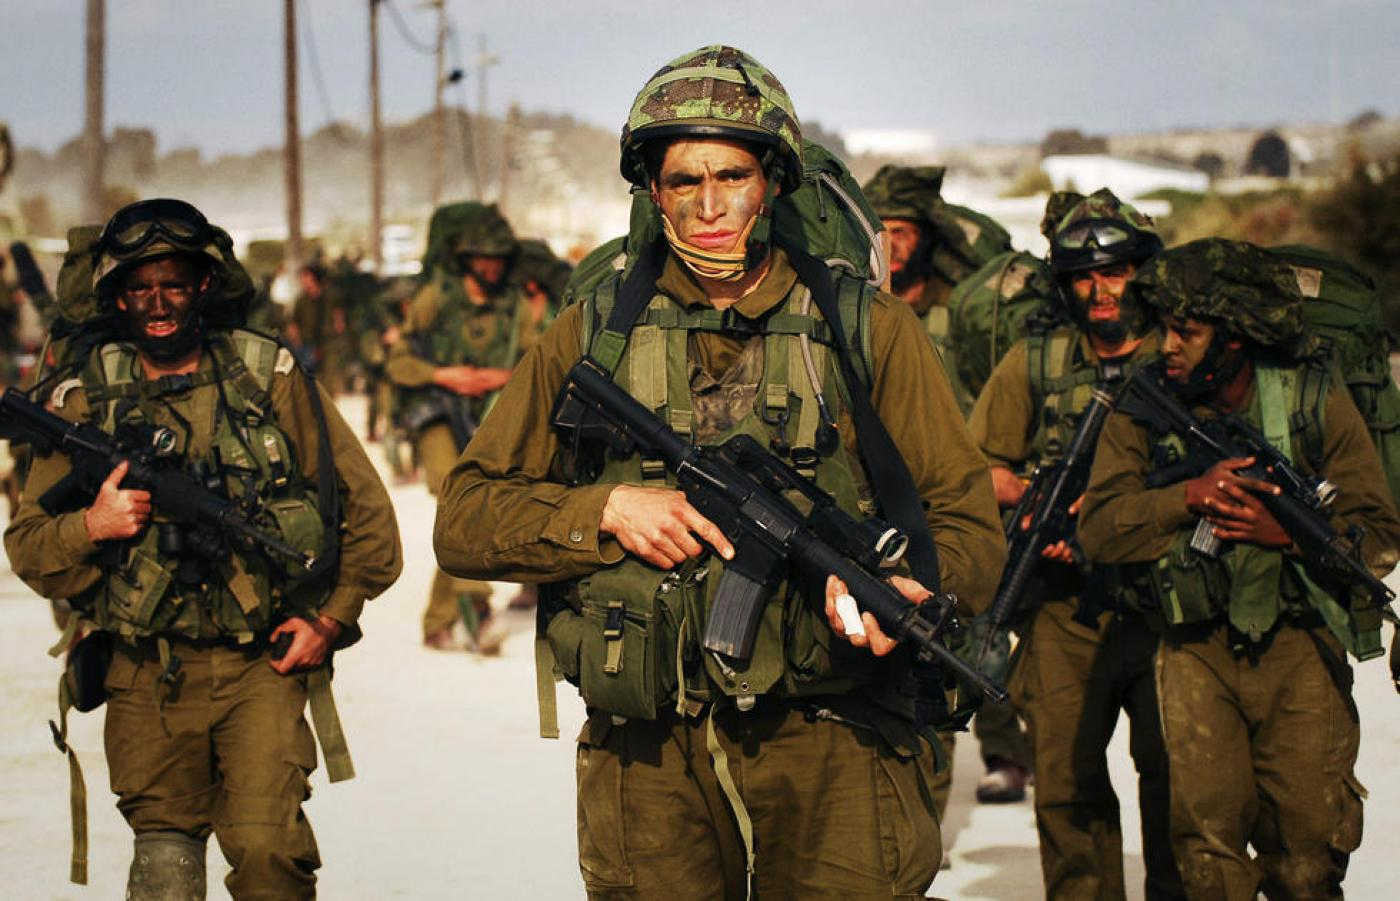 Death to Arabs': The Israeli army's new unofficial slogan? | Middle East Eye